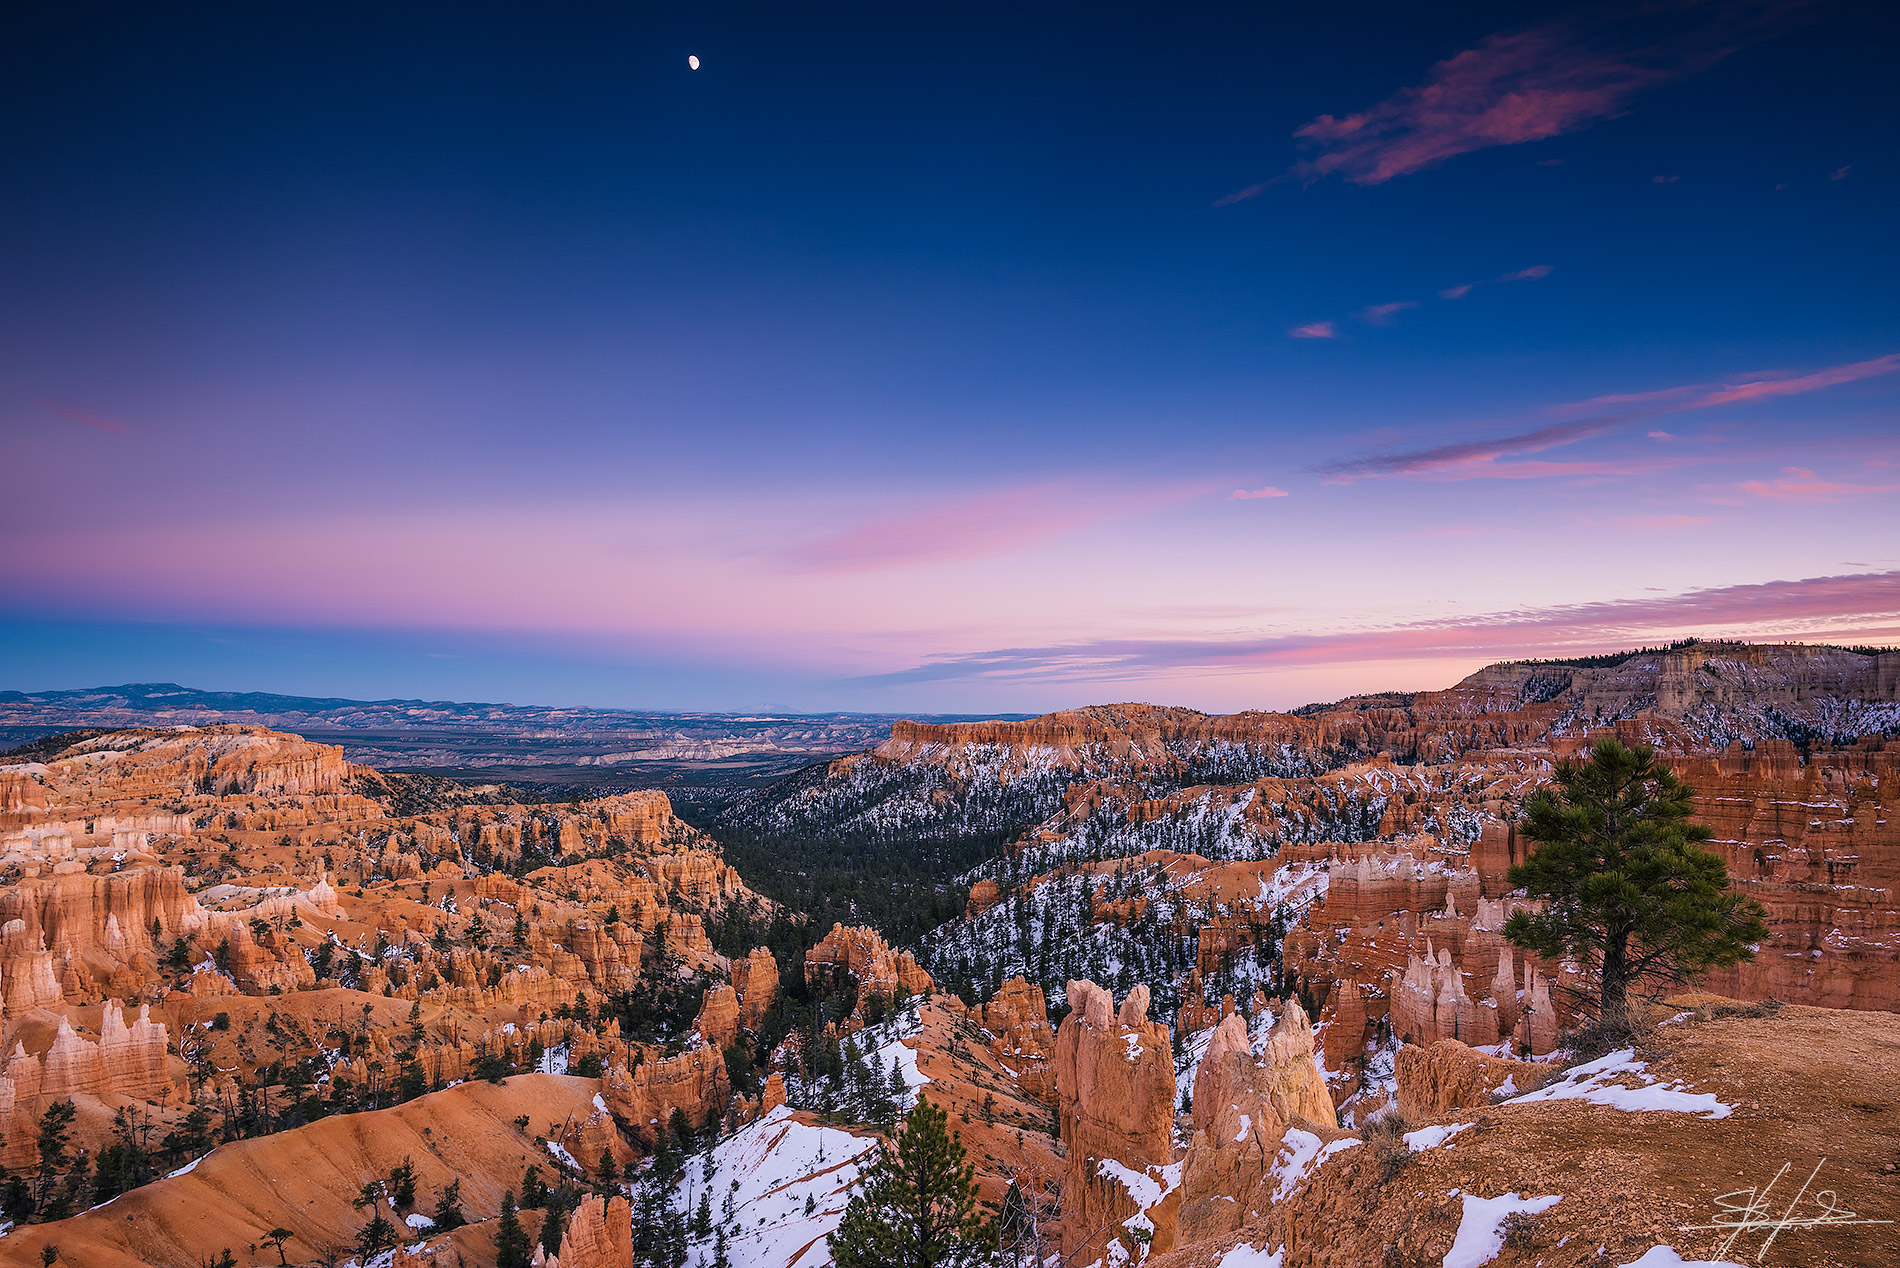 Blue hour at Bryce Canyon